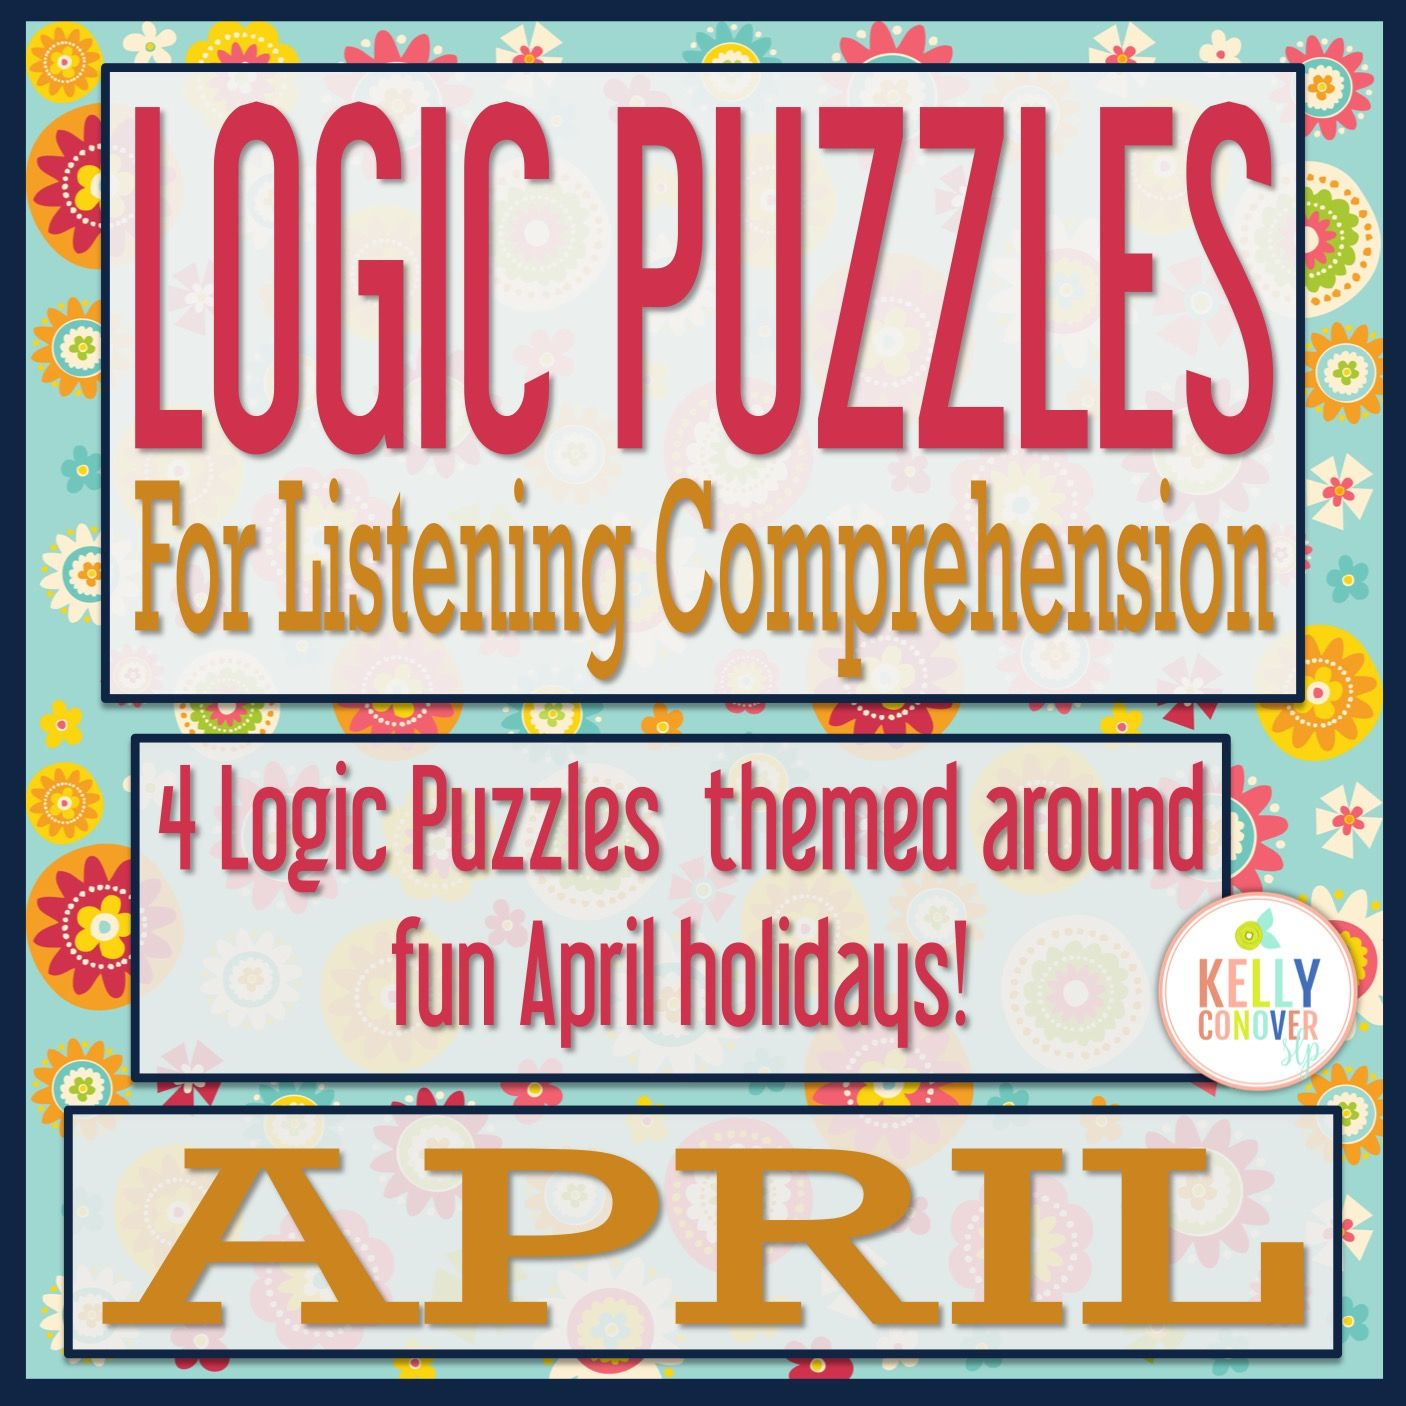 One Year Of Logic Puzzles For Listening Comprehension For